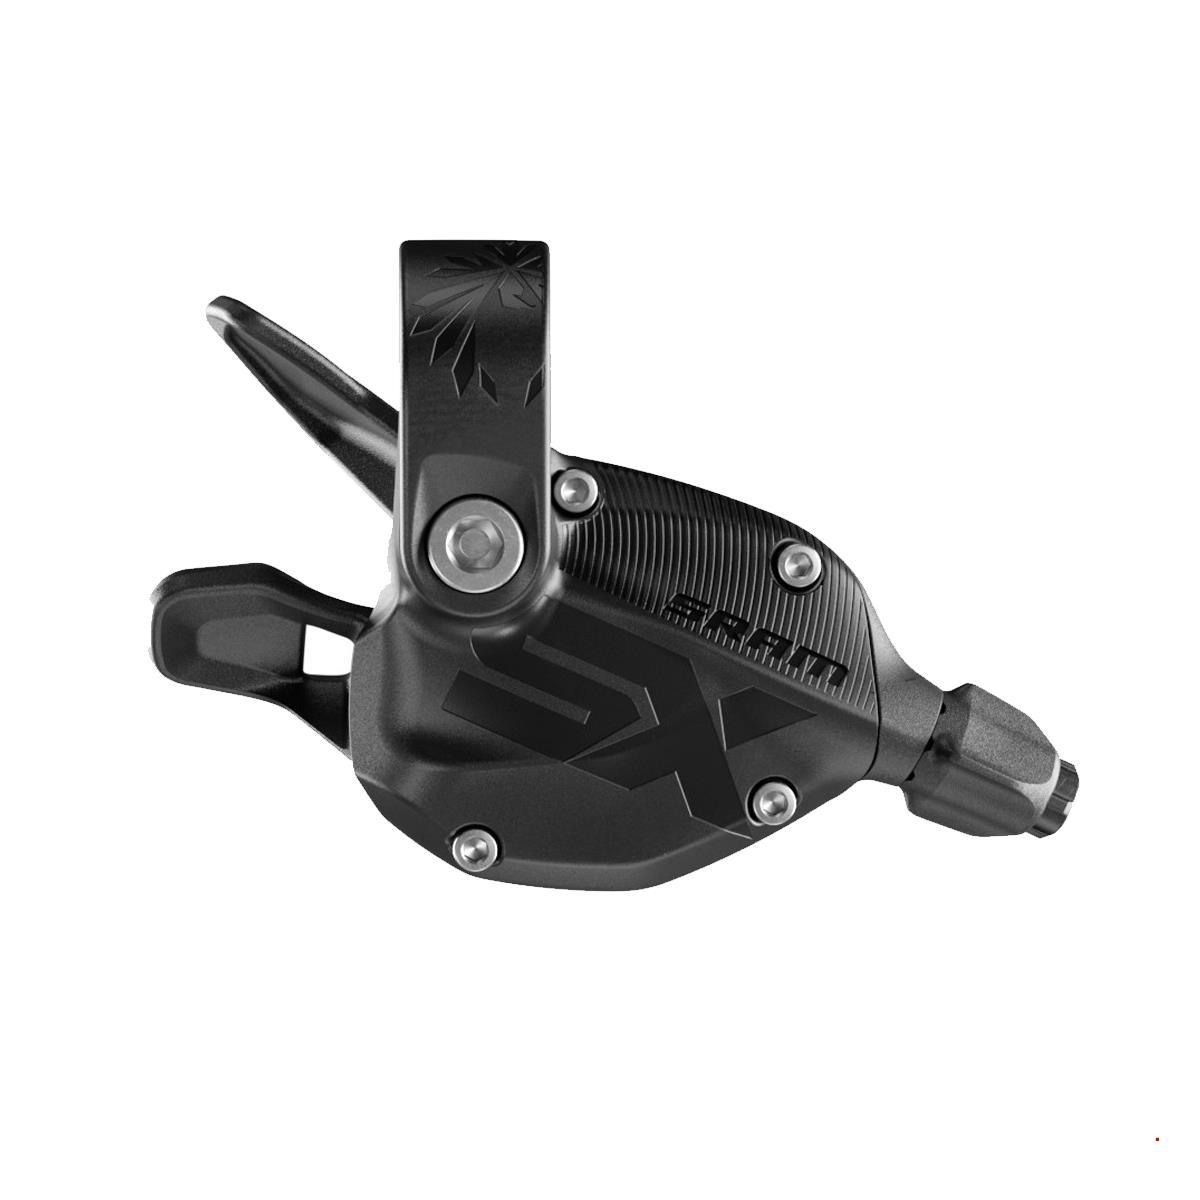 with Discrete Clamp Black A1 12-Speed SRAM SX Eagle Rear Trigger Shifter